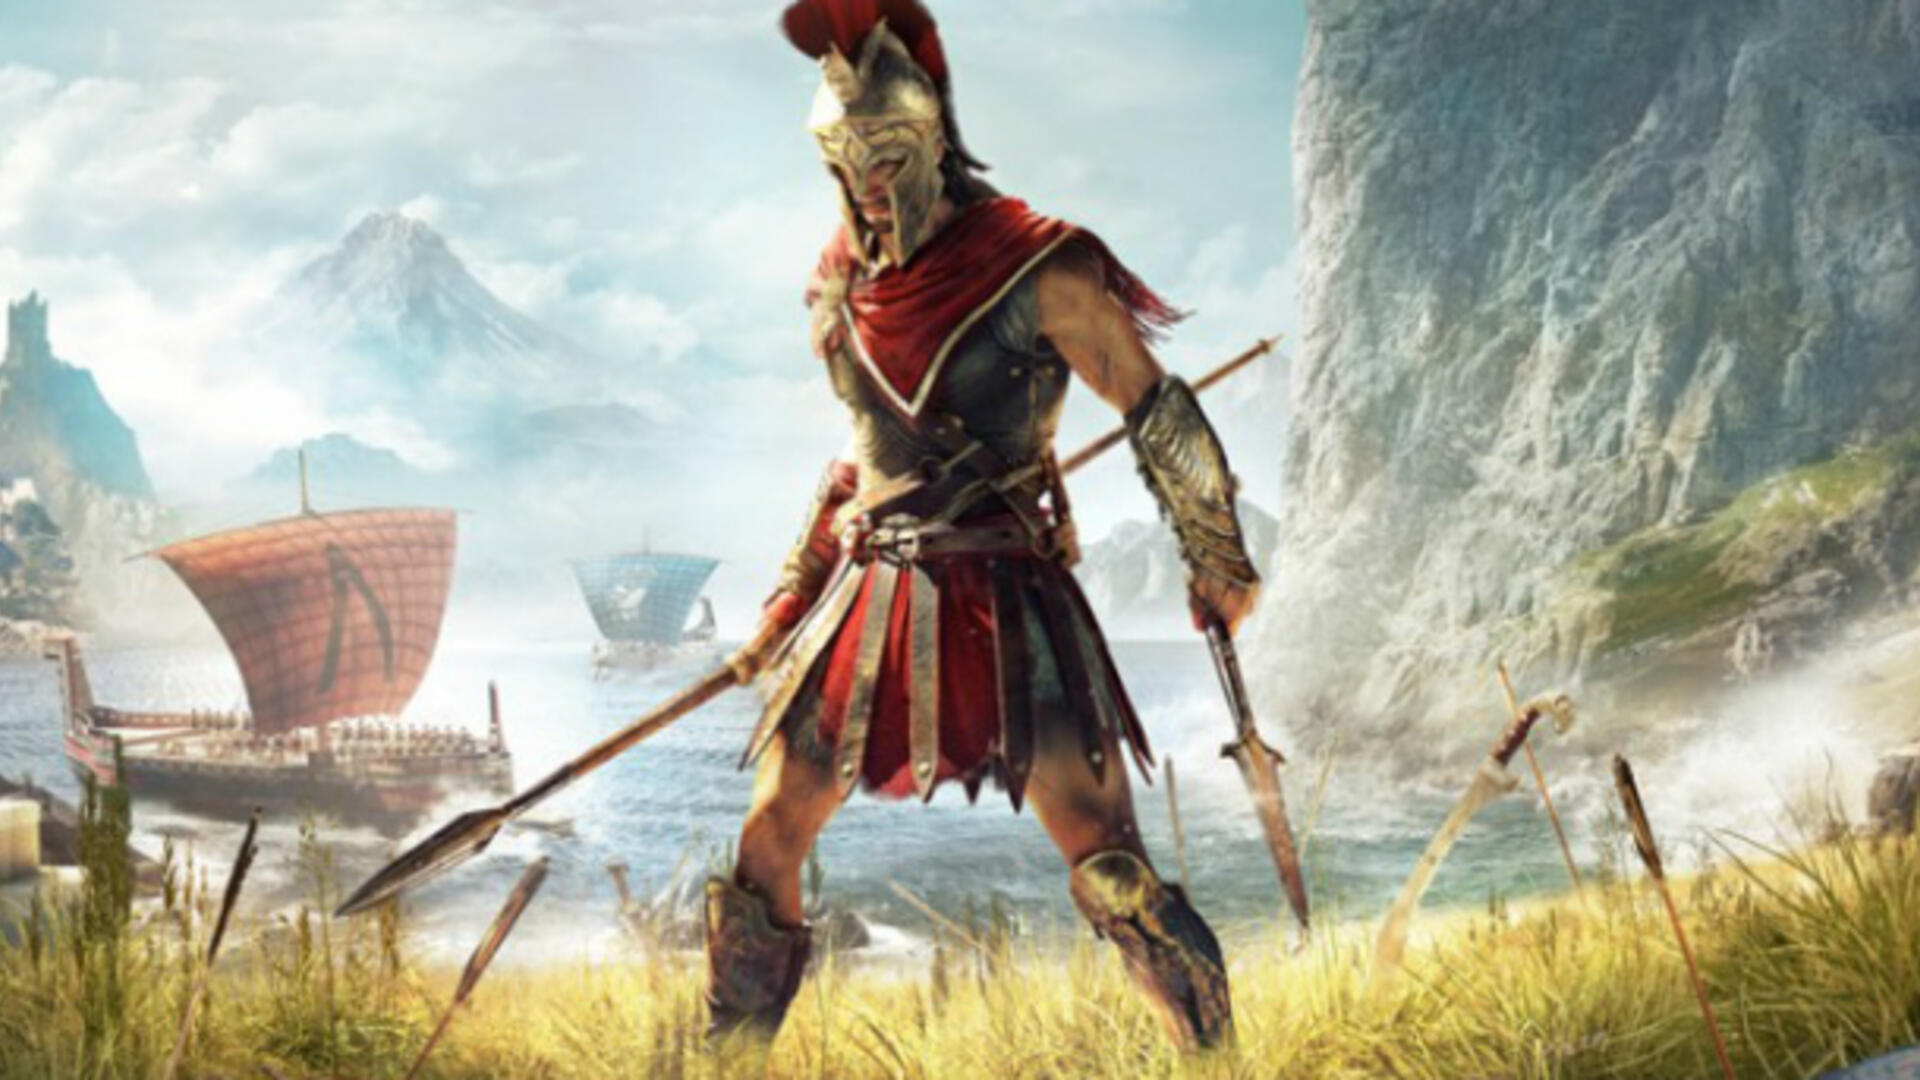 There Will Be No New Assassin S Creed Game In 2019 Breaking Annual Release Cycle Usgamer